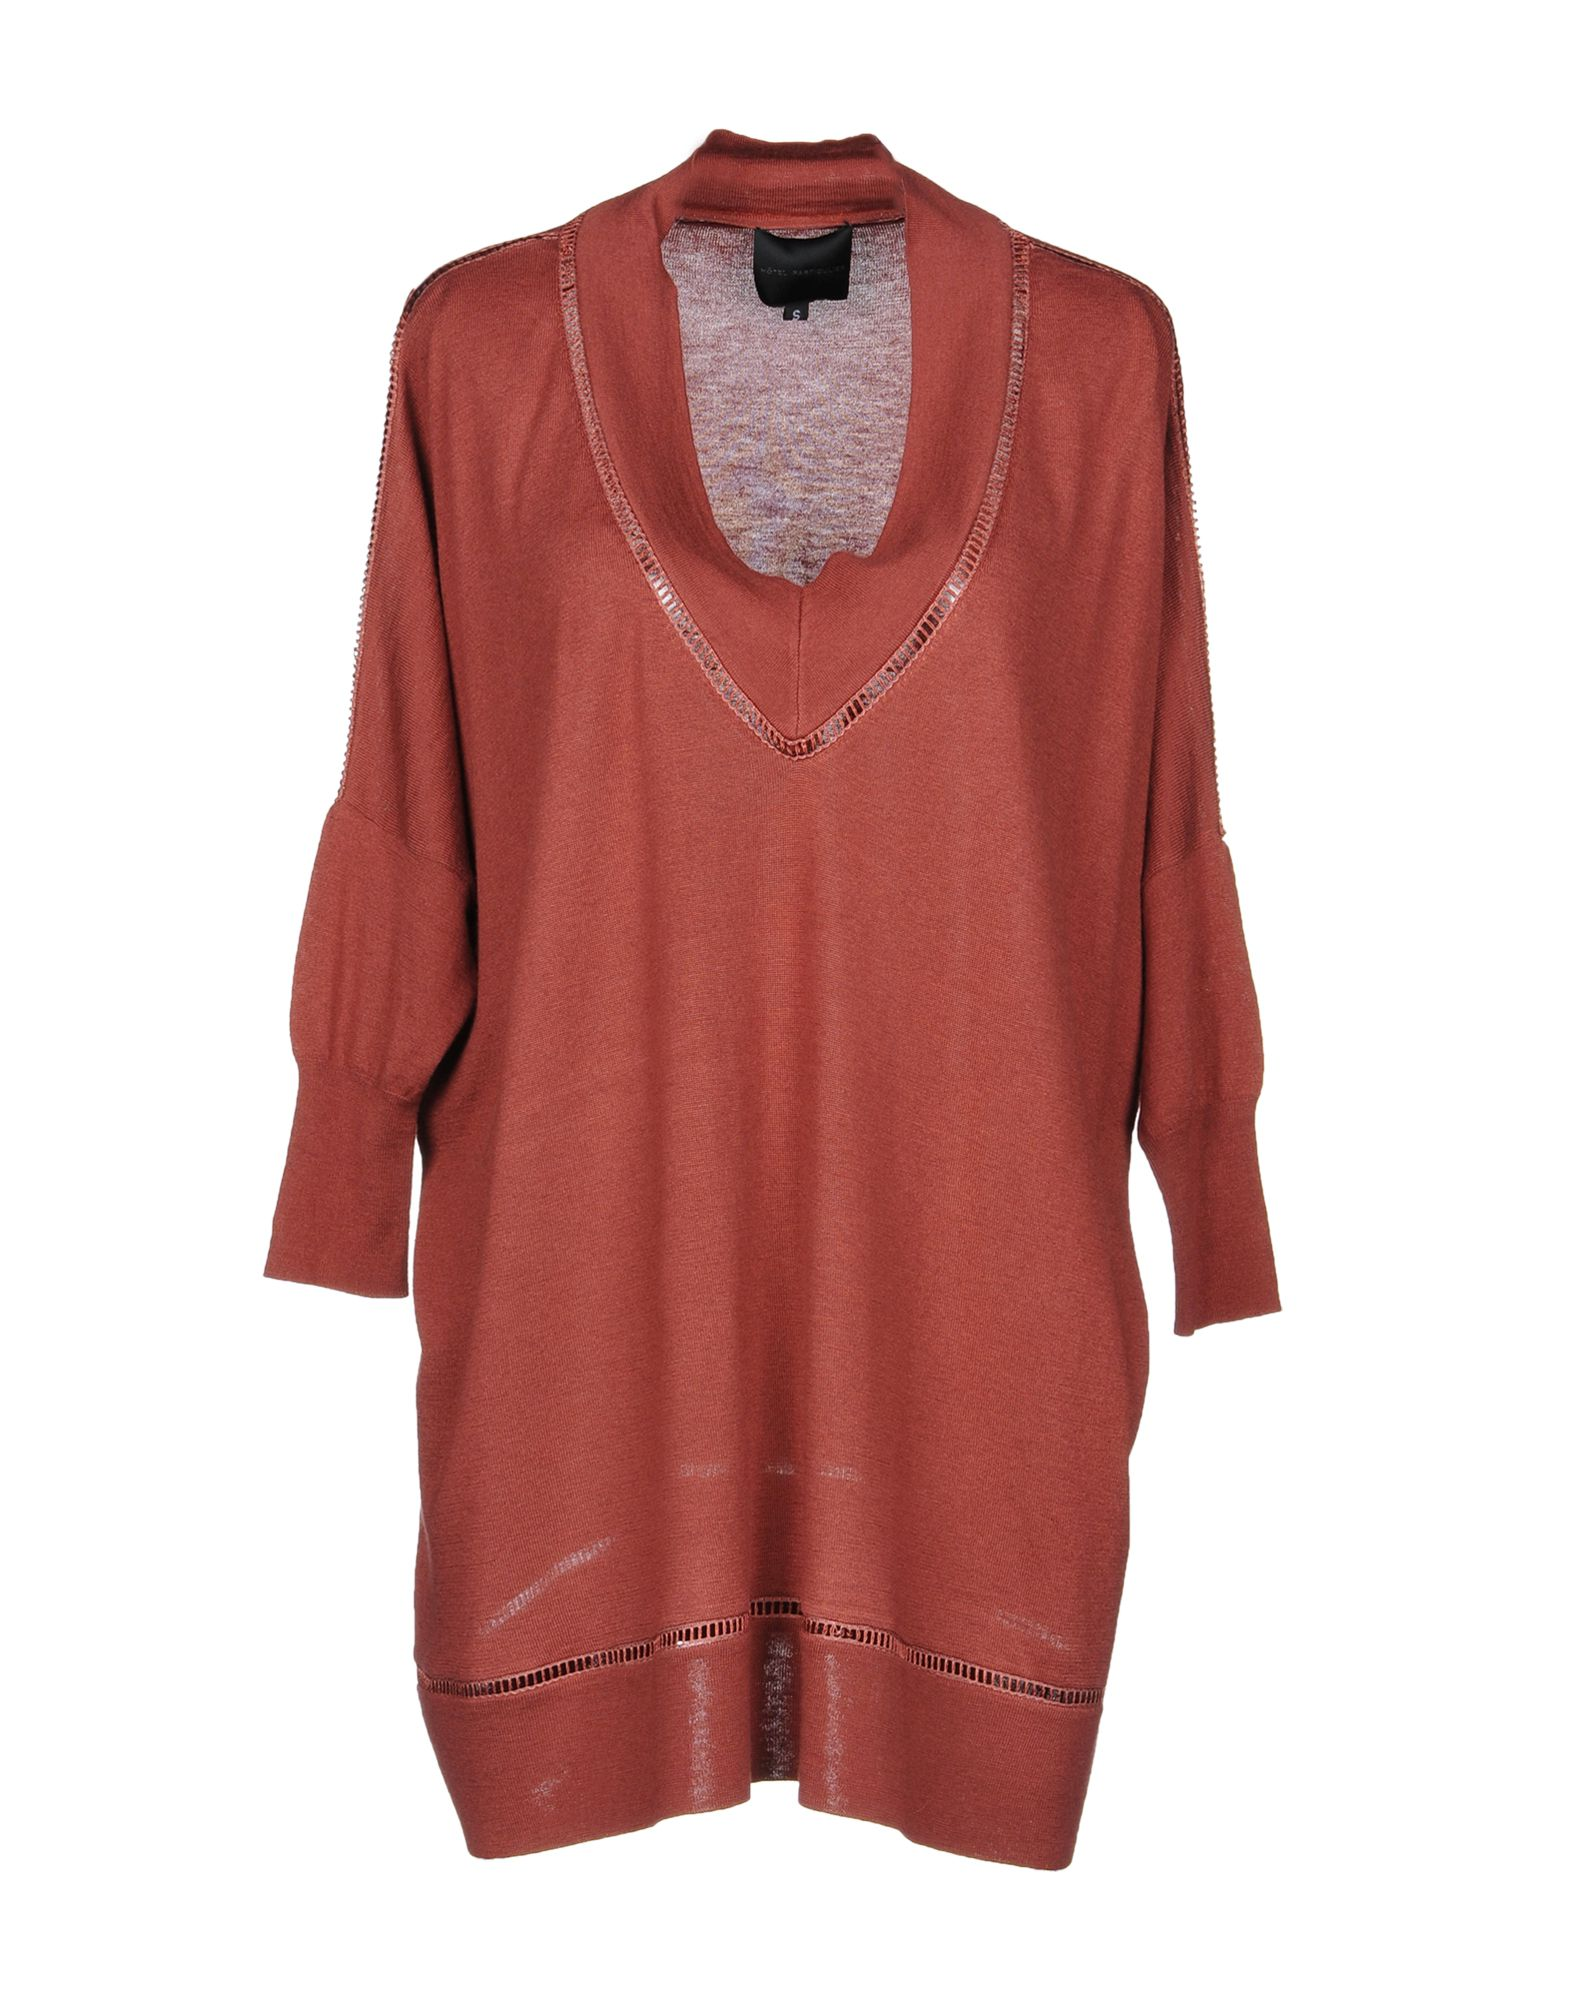 HOTEL PARTICULIER Sweater in Brick Red